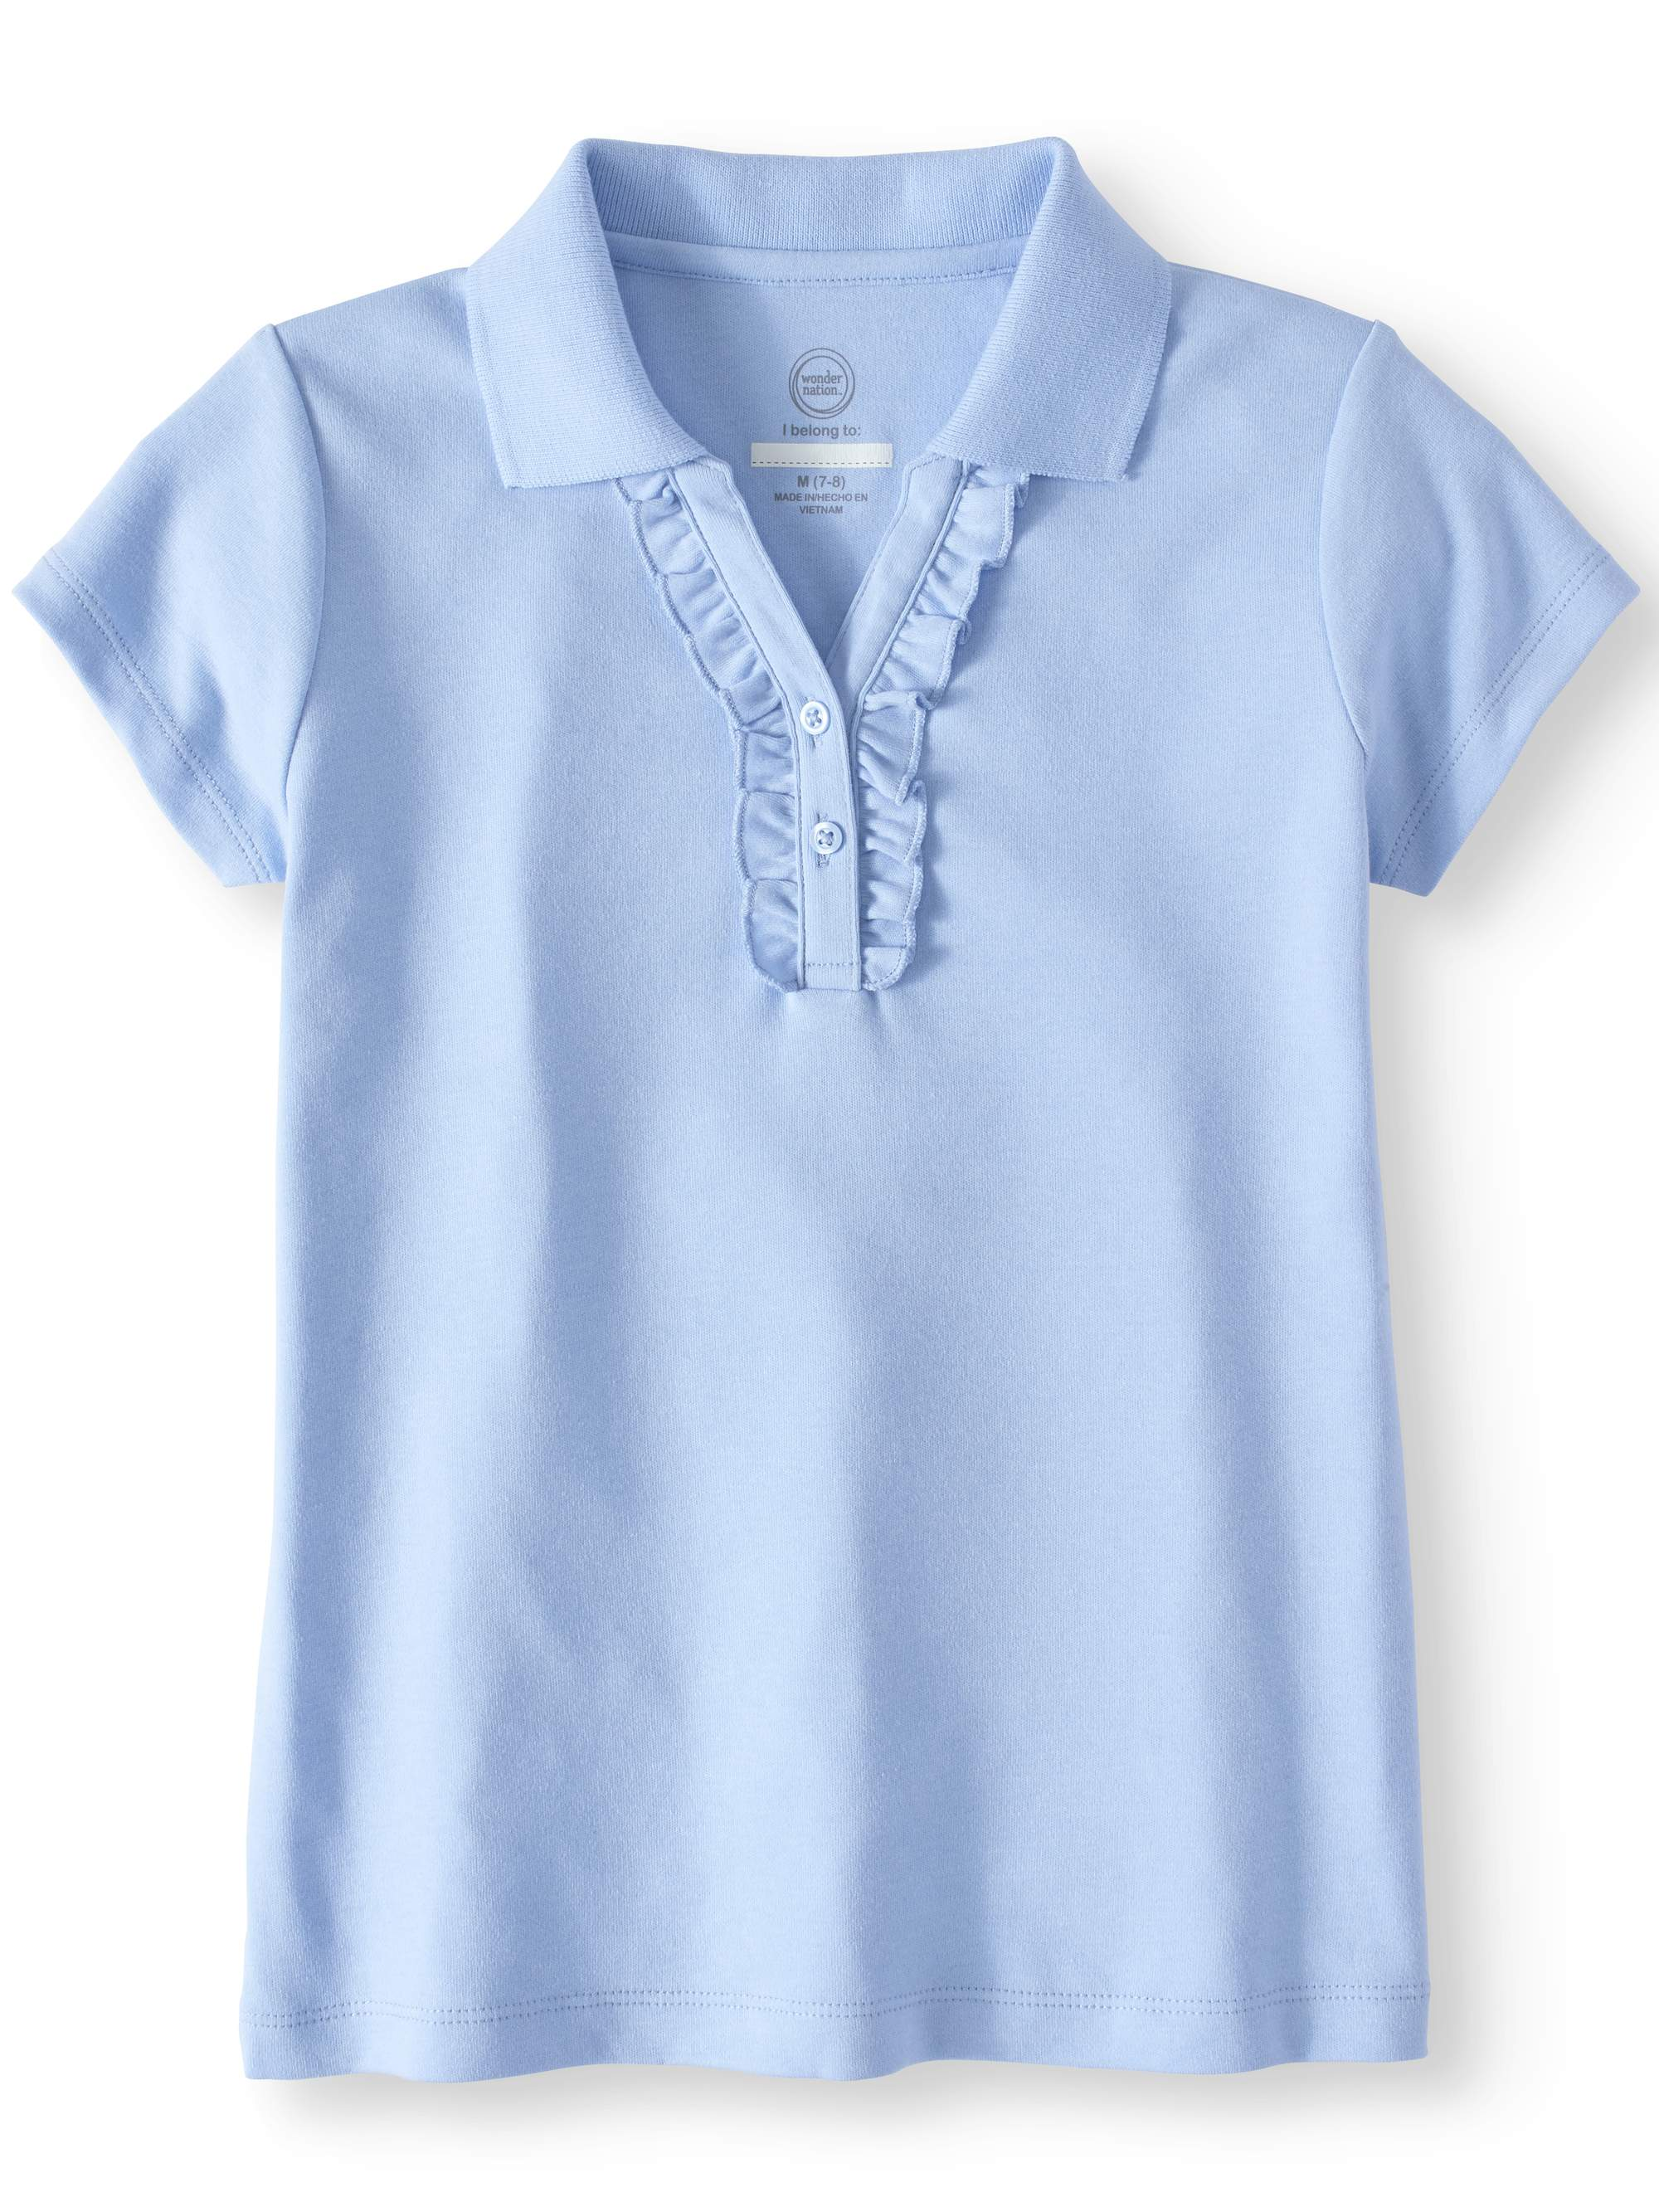 Girls School Uniform Short Sleeve Ruffle Polo